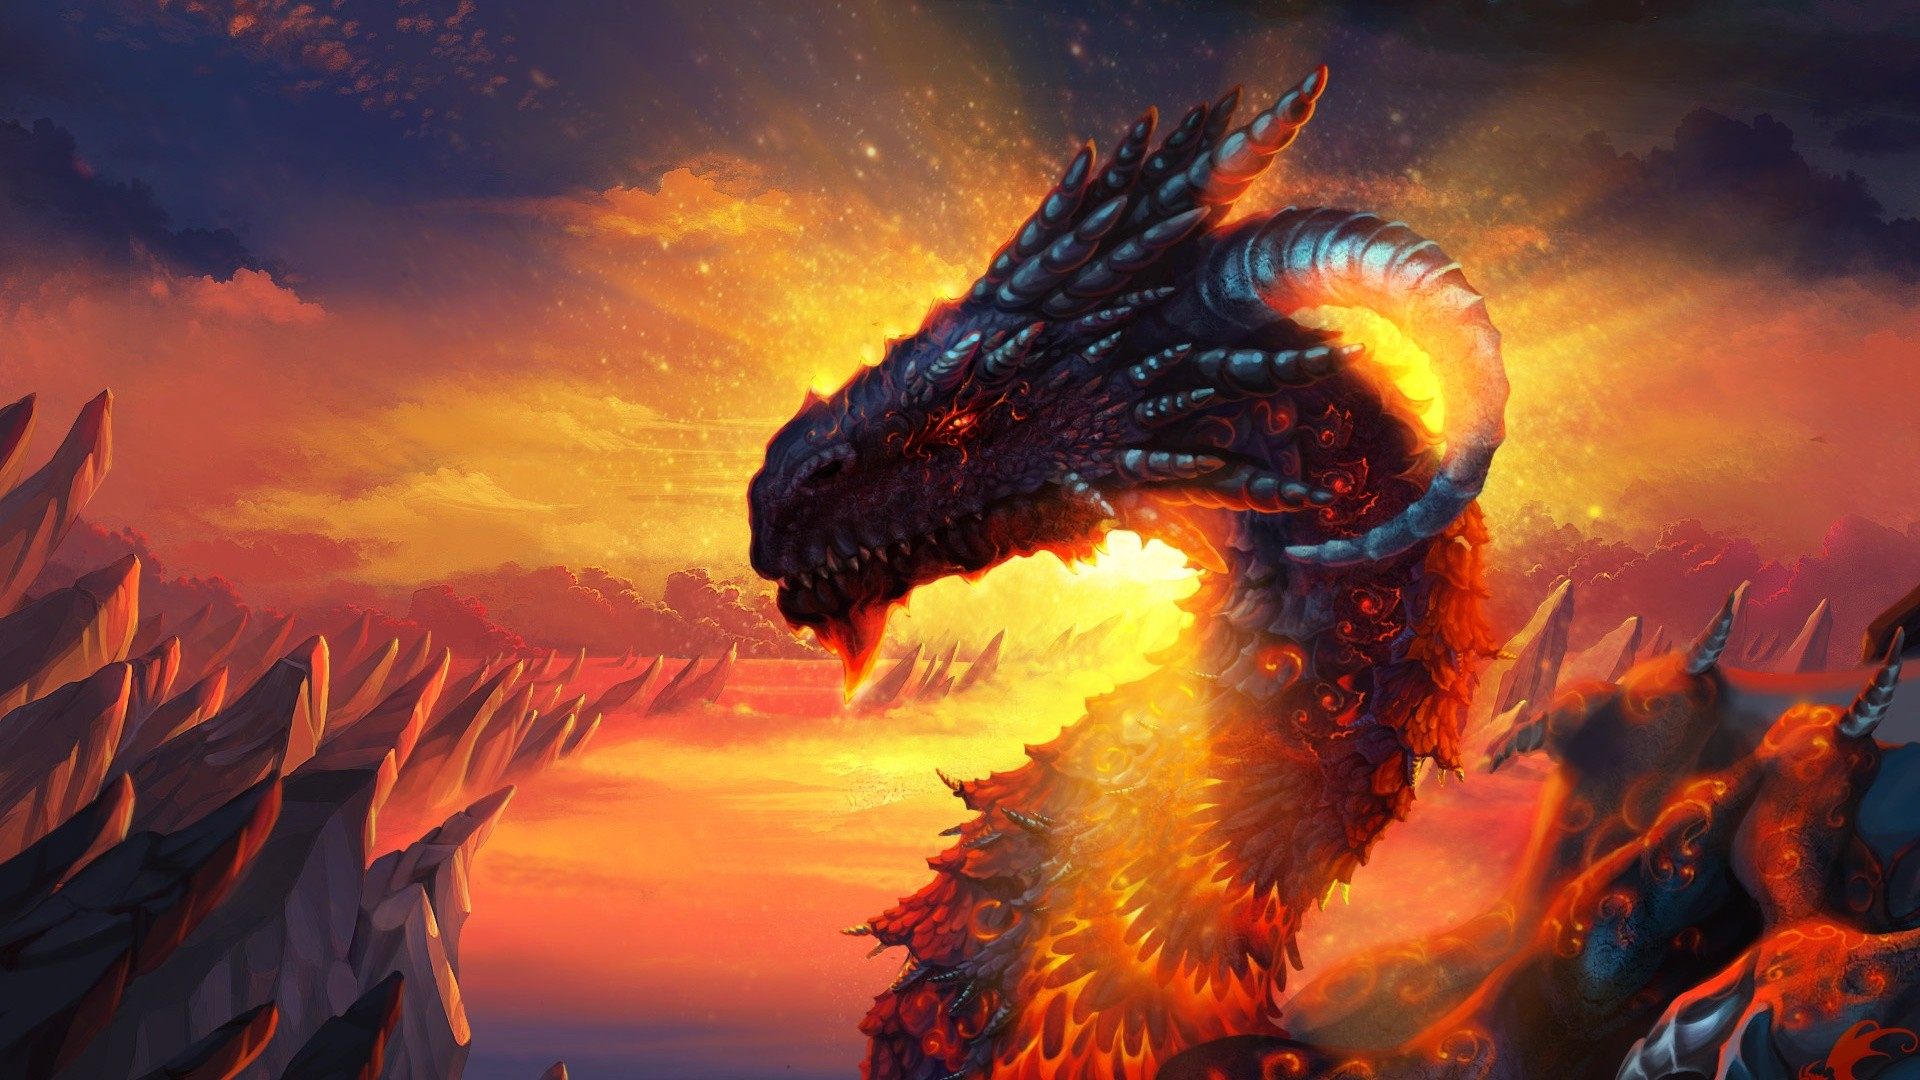 1920x1080 Hd Wallpaper  Dragon Dragon lava sky hd wallpaper